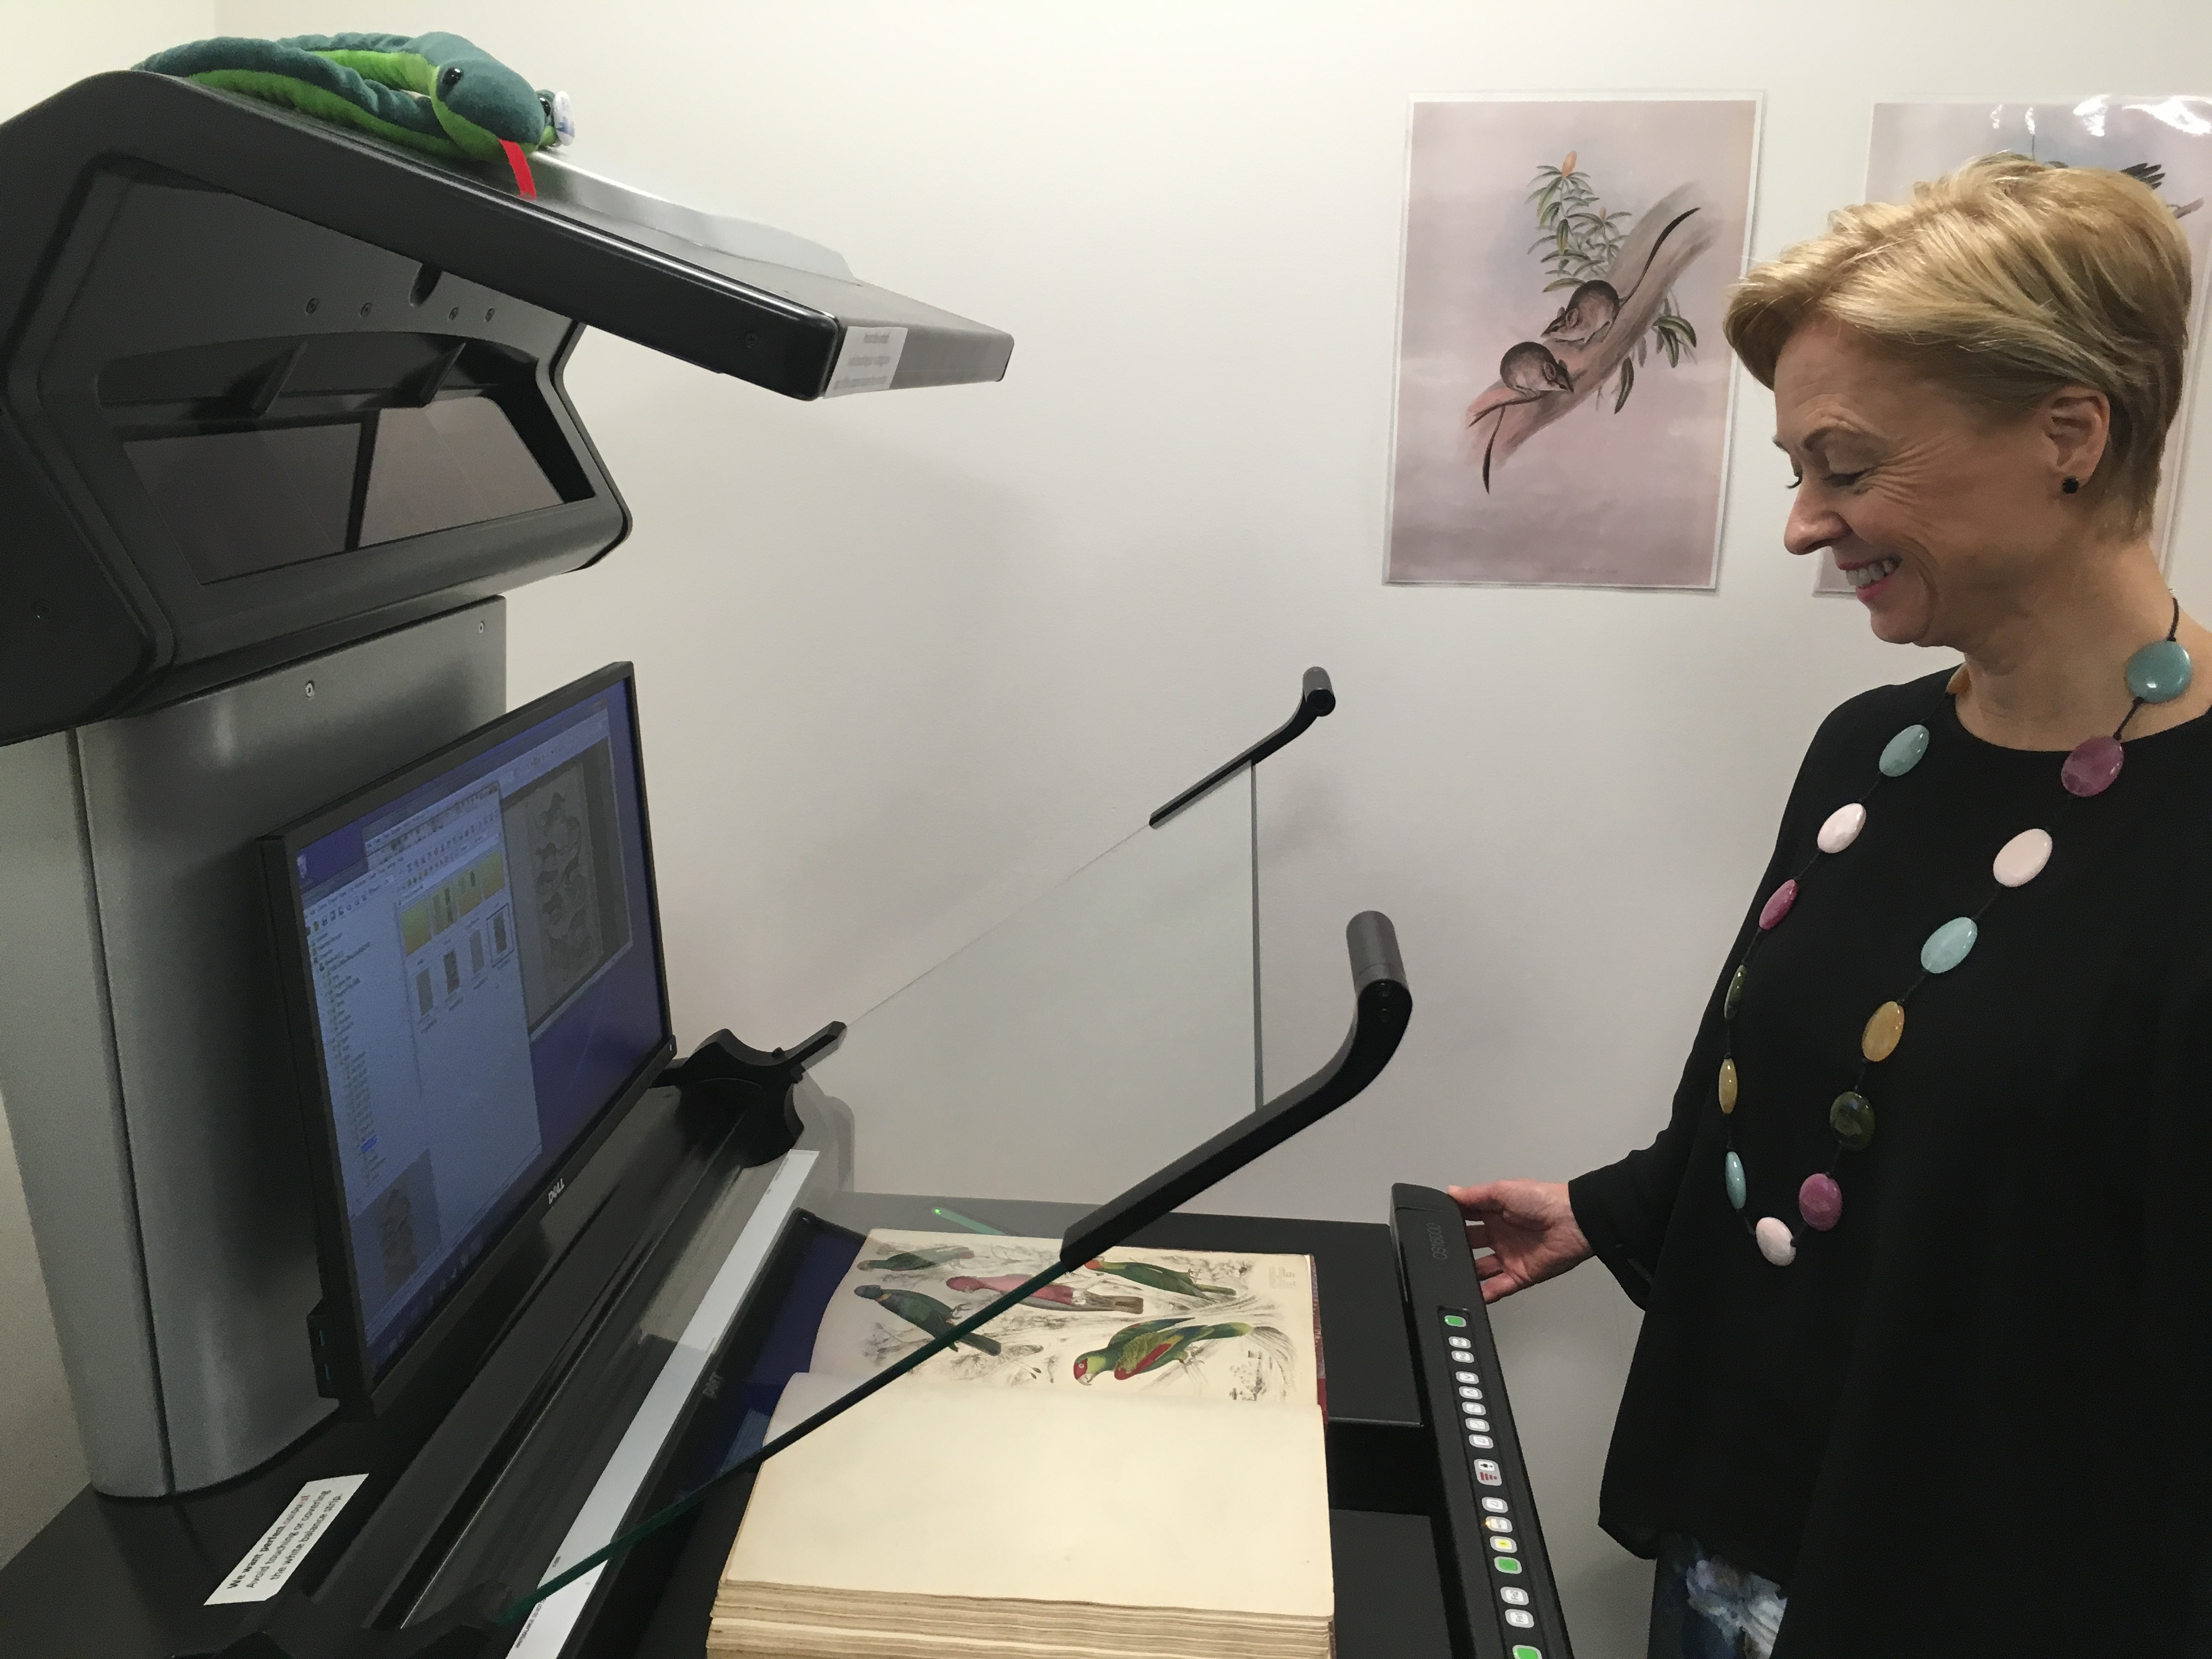 Image: A New Scanner for Digitizing Australia's Biodiversity Heritage